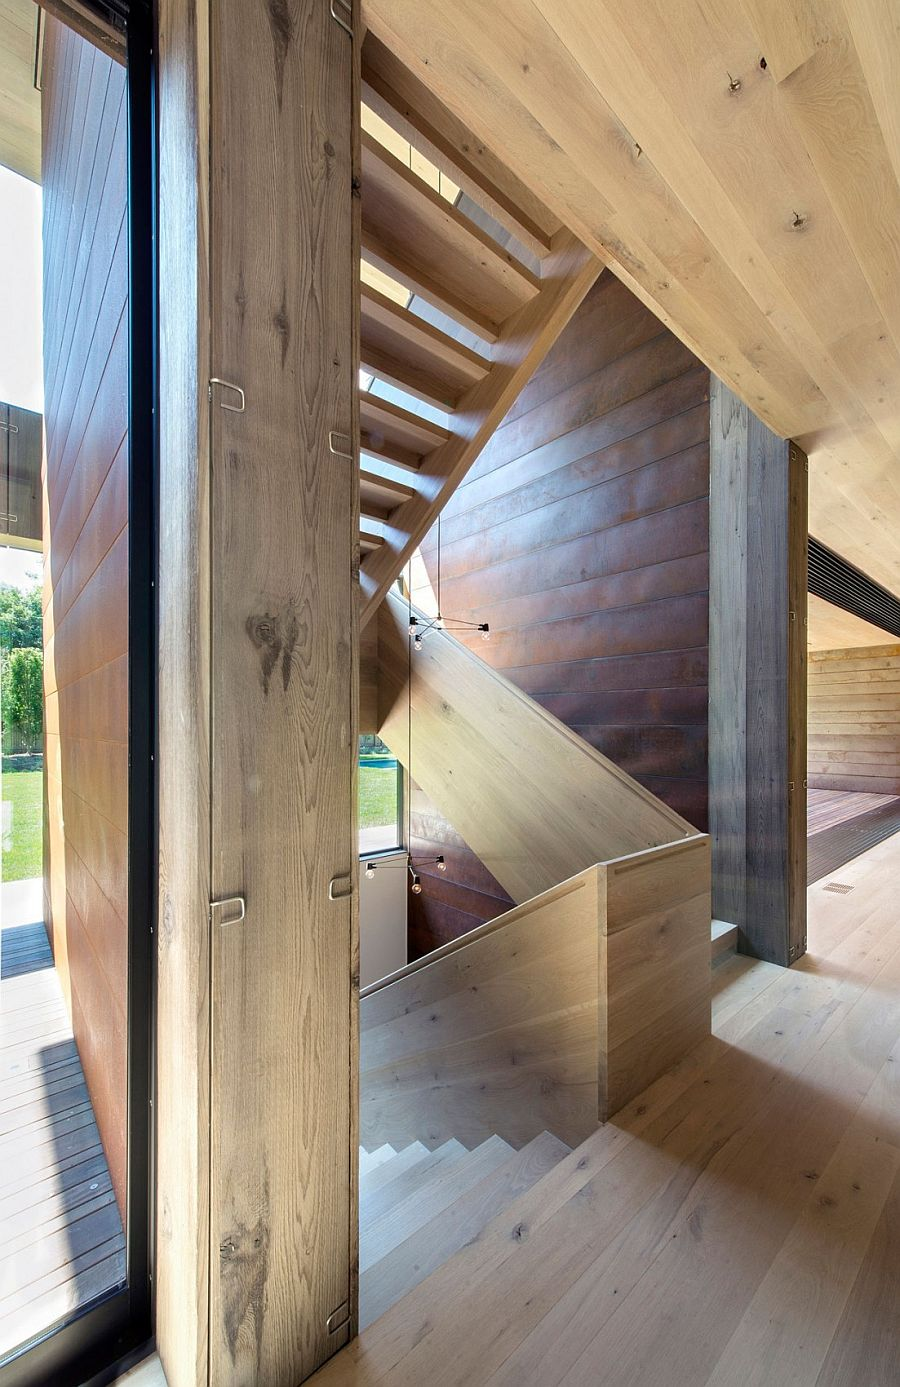 Acoustically designed staircase keeps noise down to a minimum